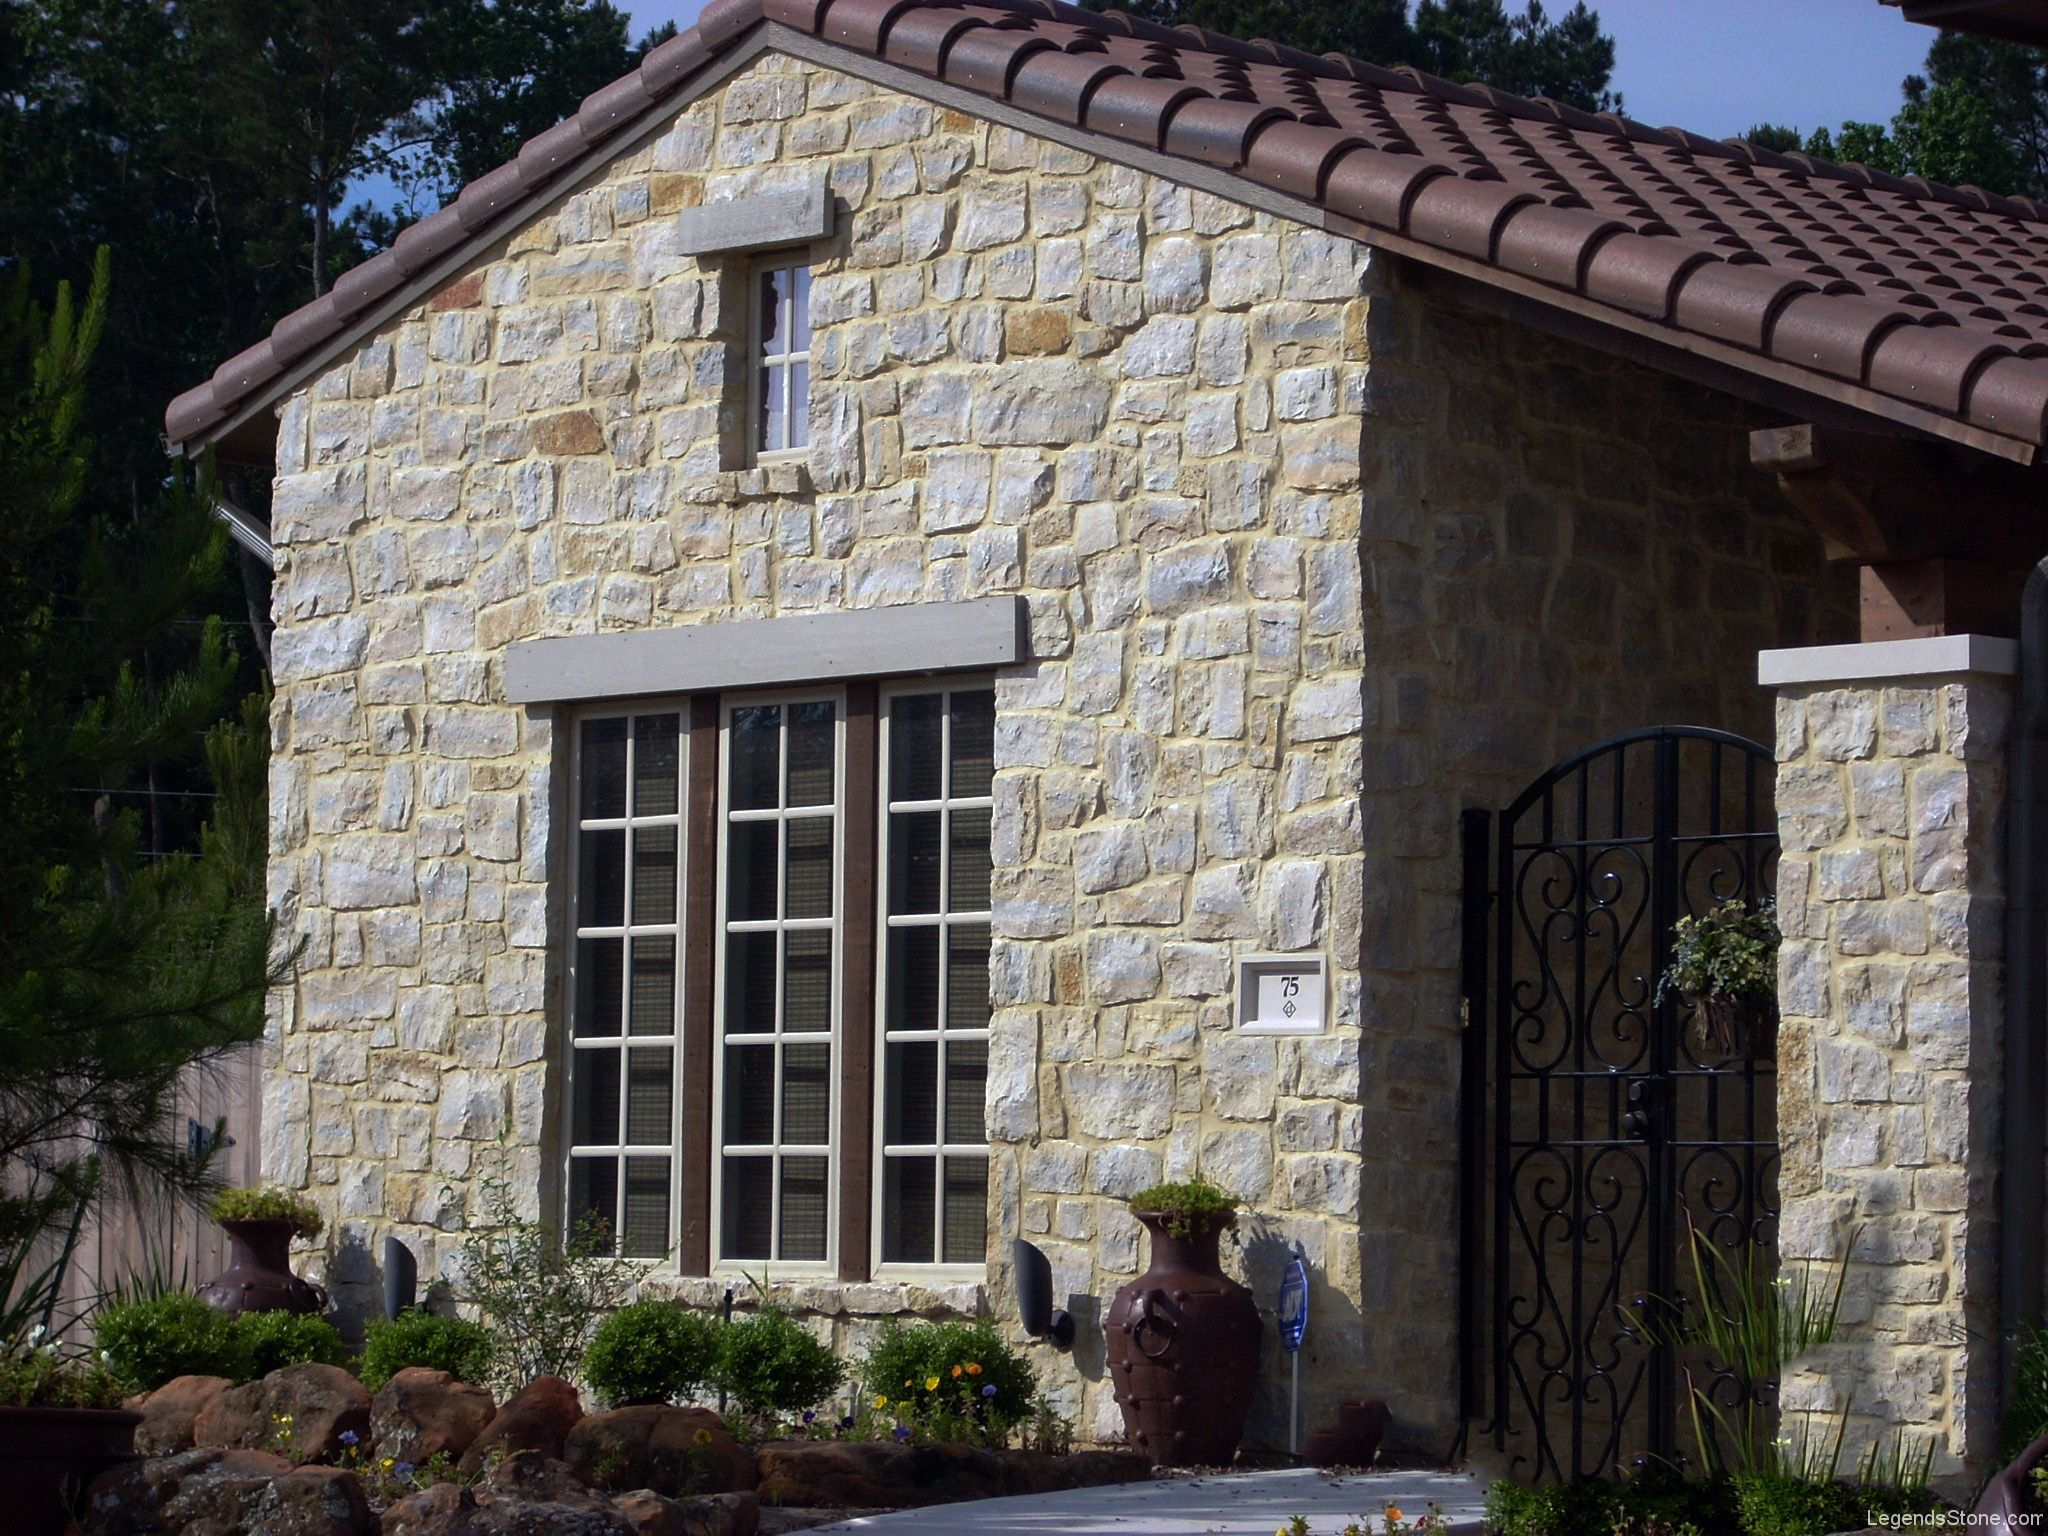 Palomino Chop Legends Stone Natural Stone Building